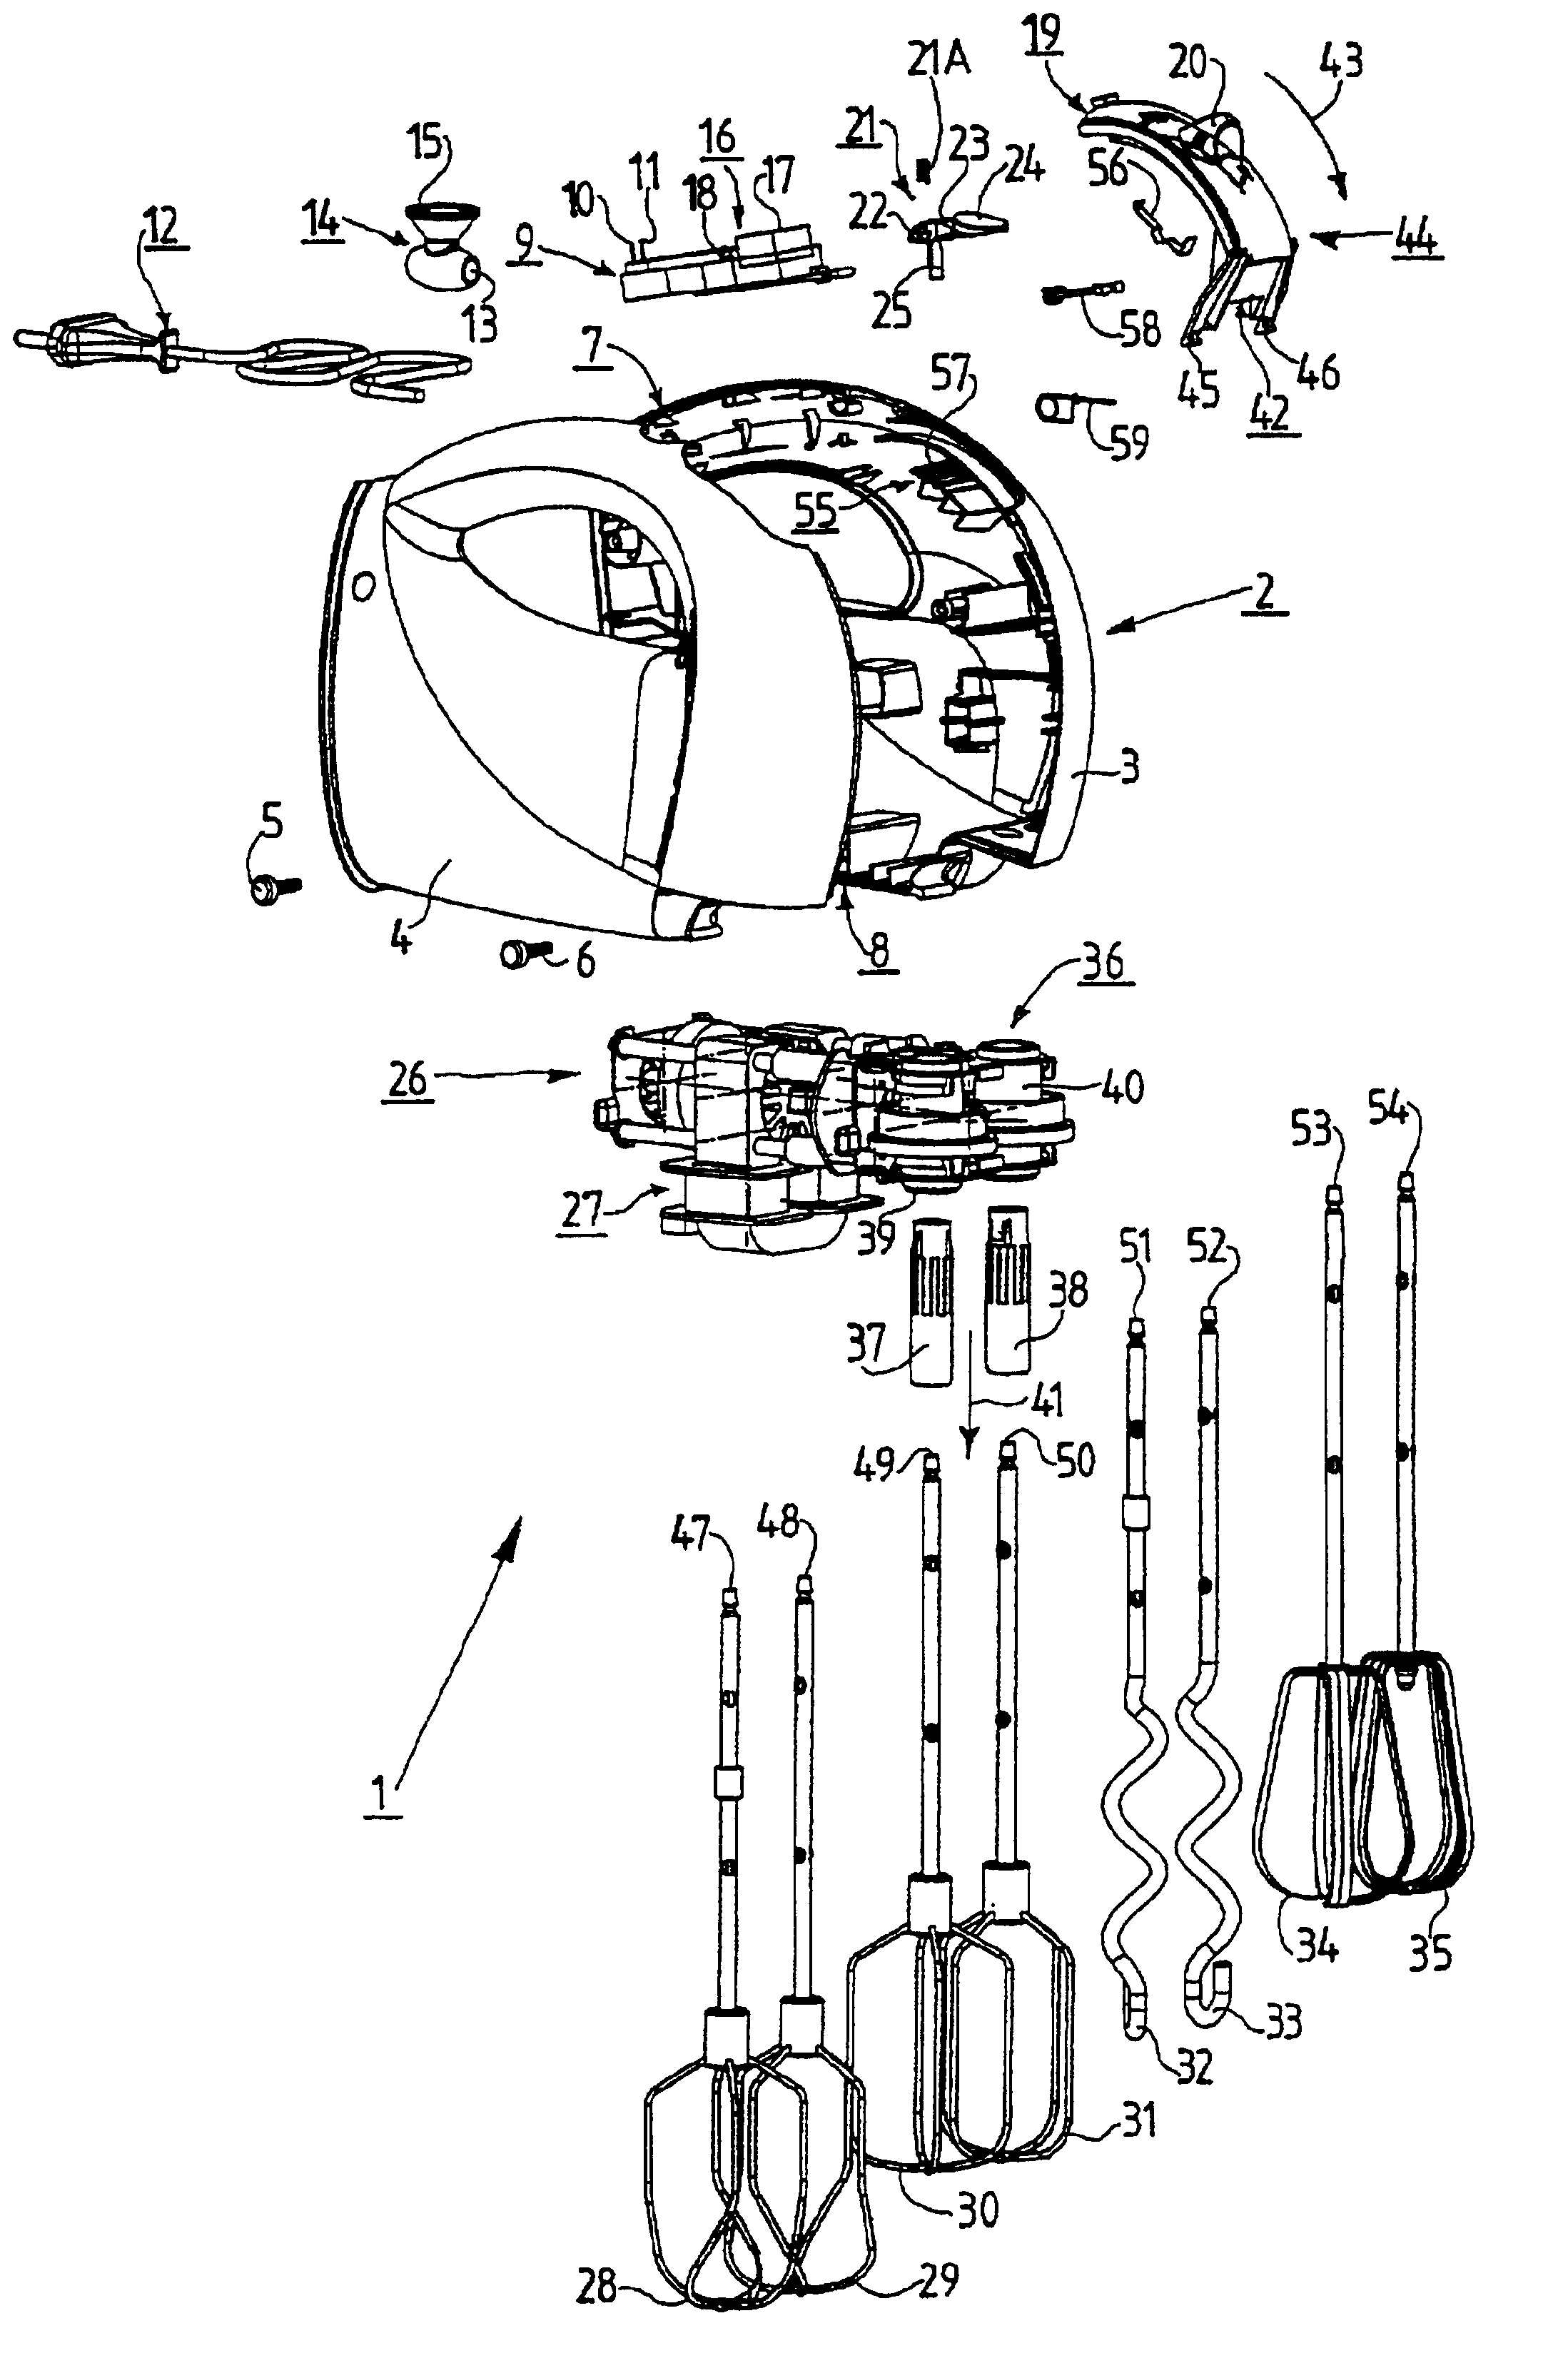 Patent US6802637 - Hand-held mixer having a switching means ... on mixer circuit schematic, home theater system connection diagrams, powered mixer diagrams, sewage pump venting diagrams, xbox 360 cable connections diagrams, audio connector diagrams, pro tools studio diagrams, mixer parts,